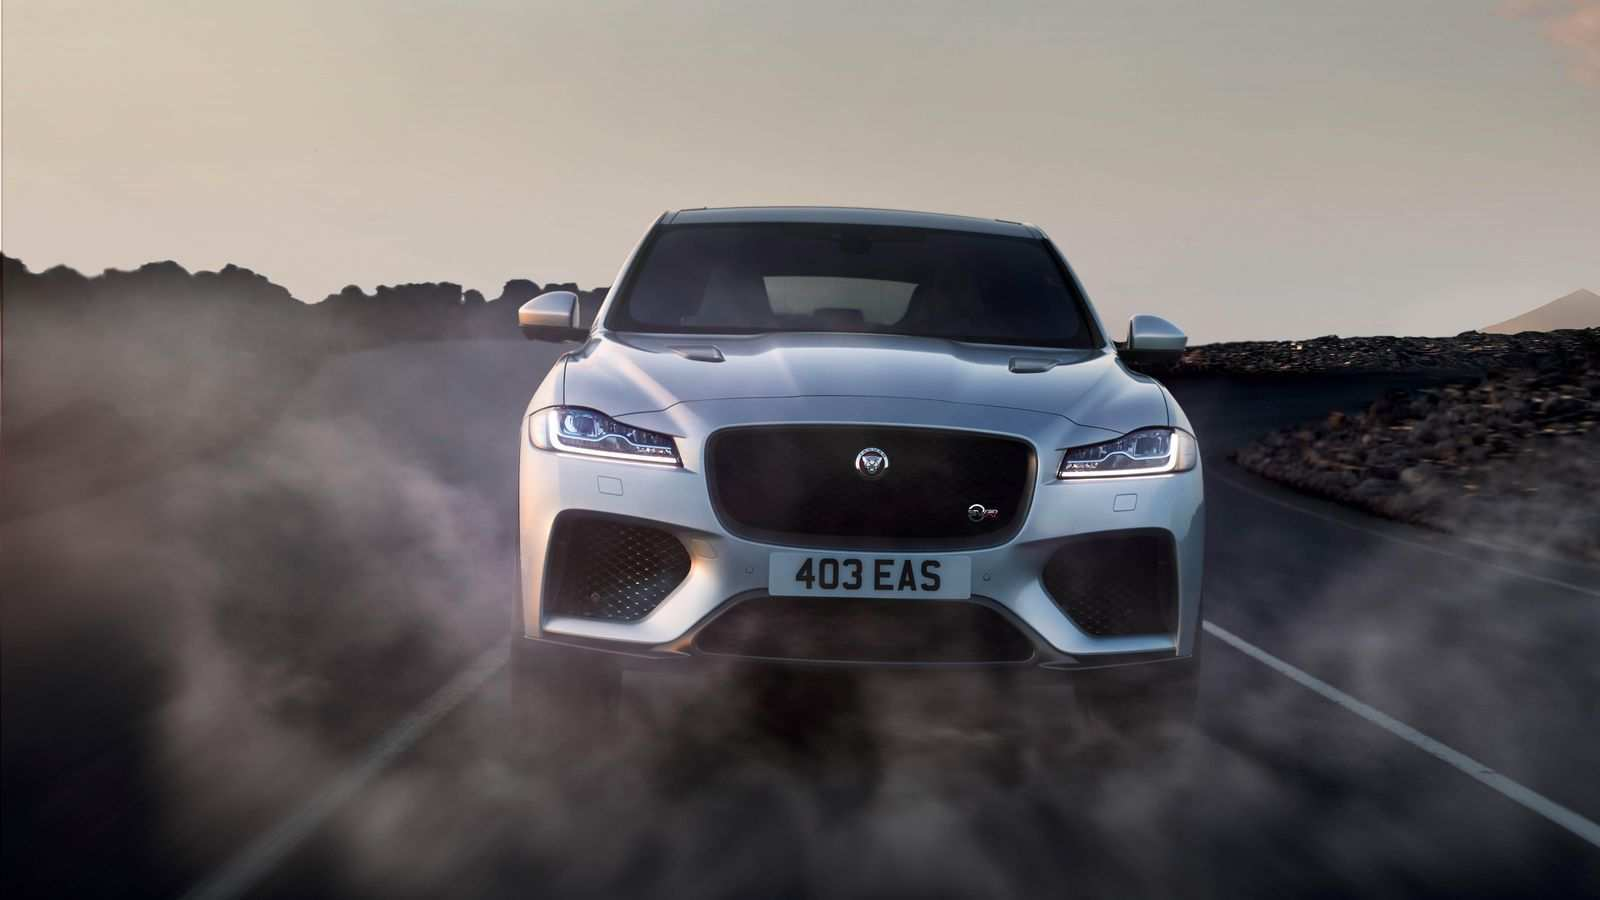 86 The 2019 Jaguar F Pace Svr Price Price Exterior and Interior for 2019 Jaguar F Pace Svr Price Price